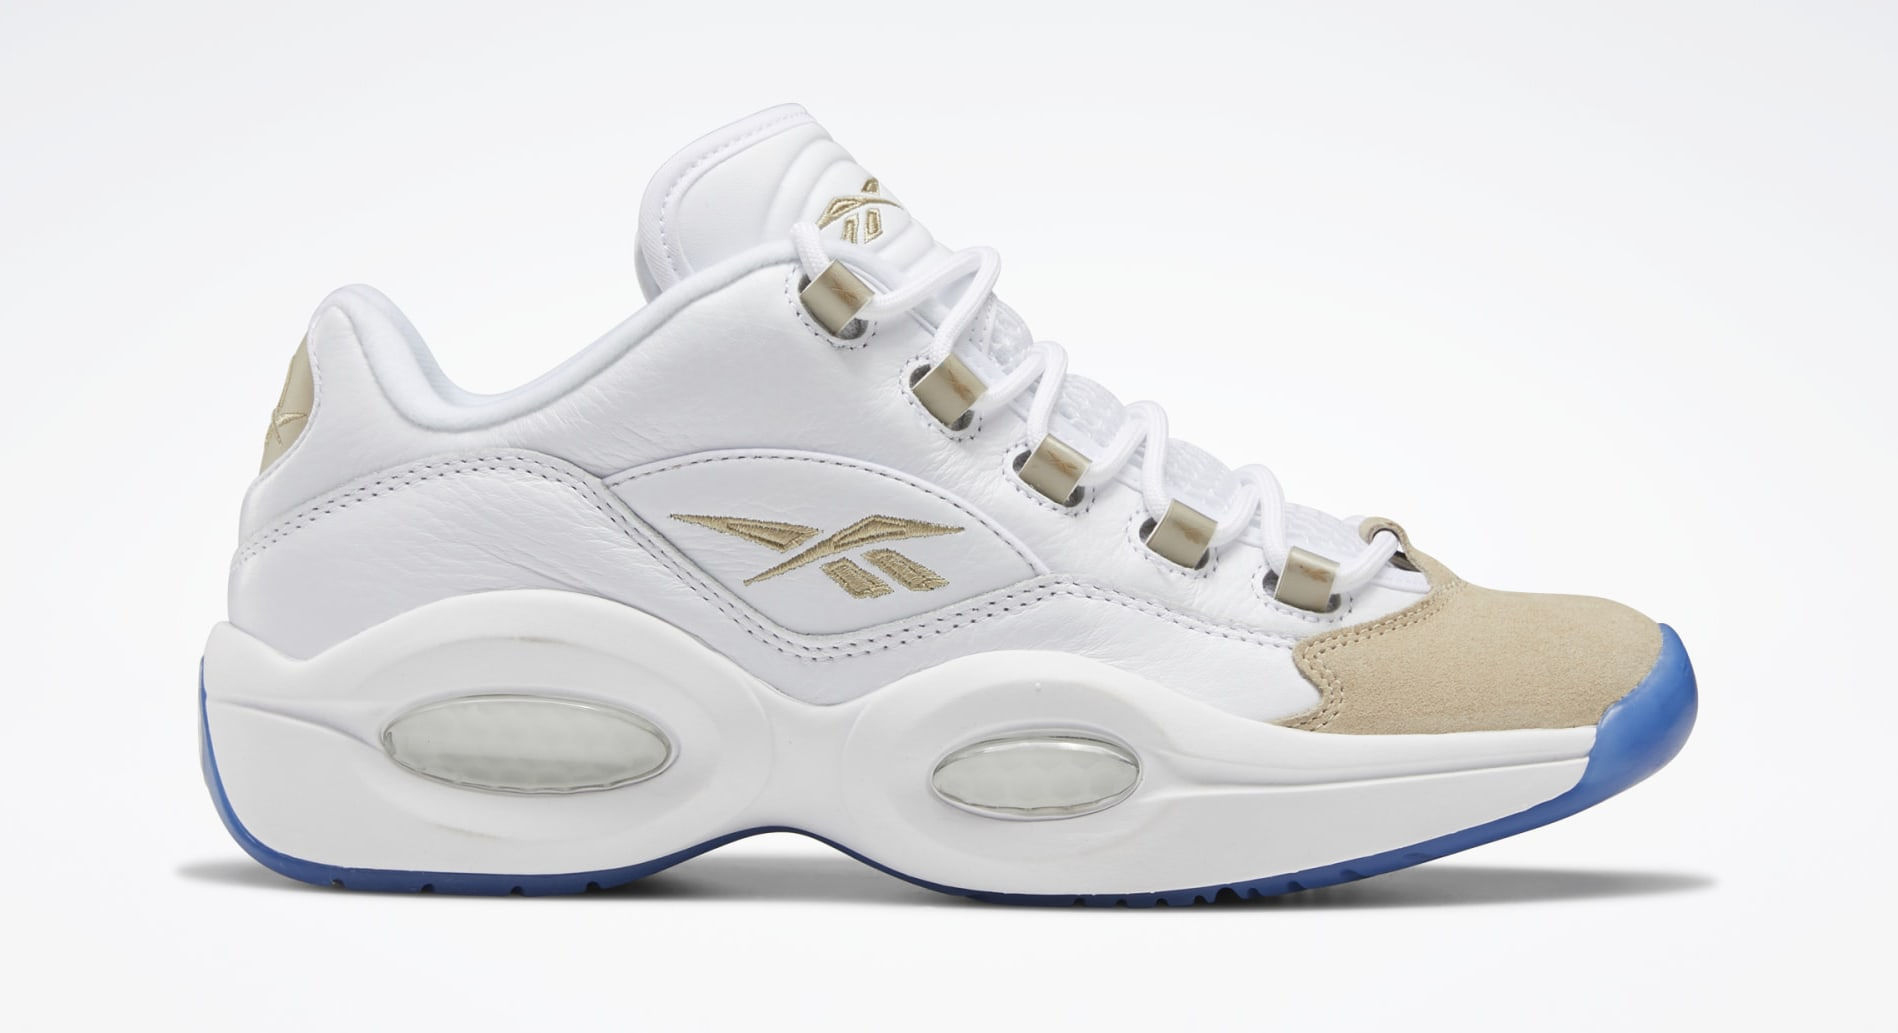 Reebok Question Low 'Oatmeal' EF7609 Lateral